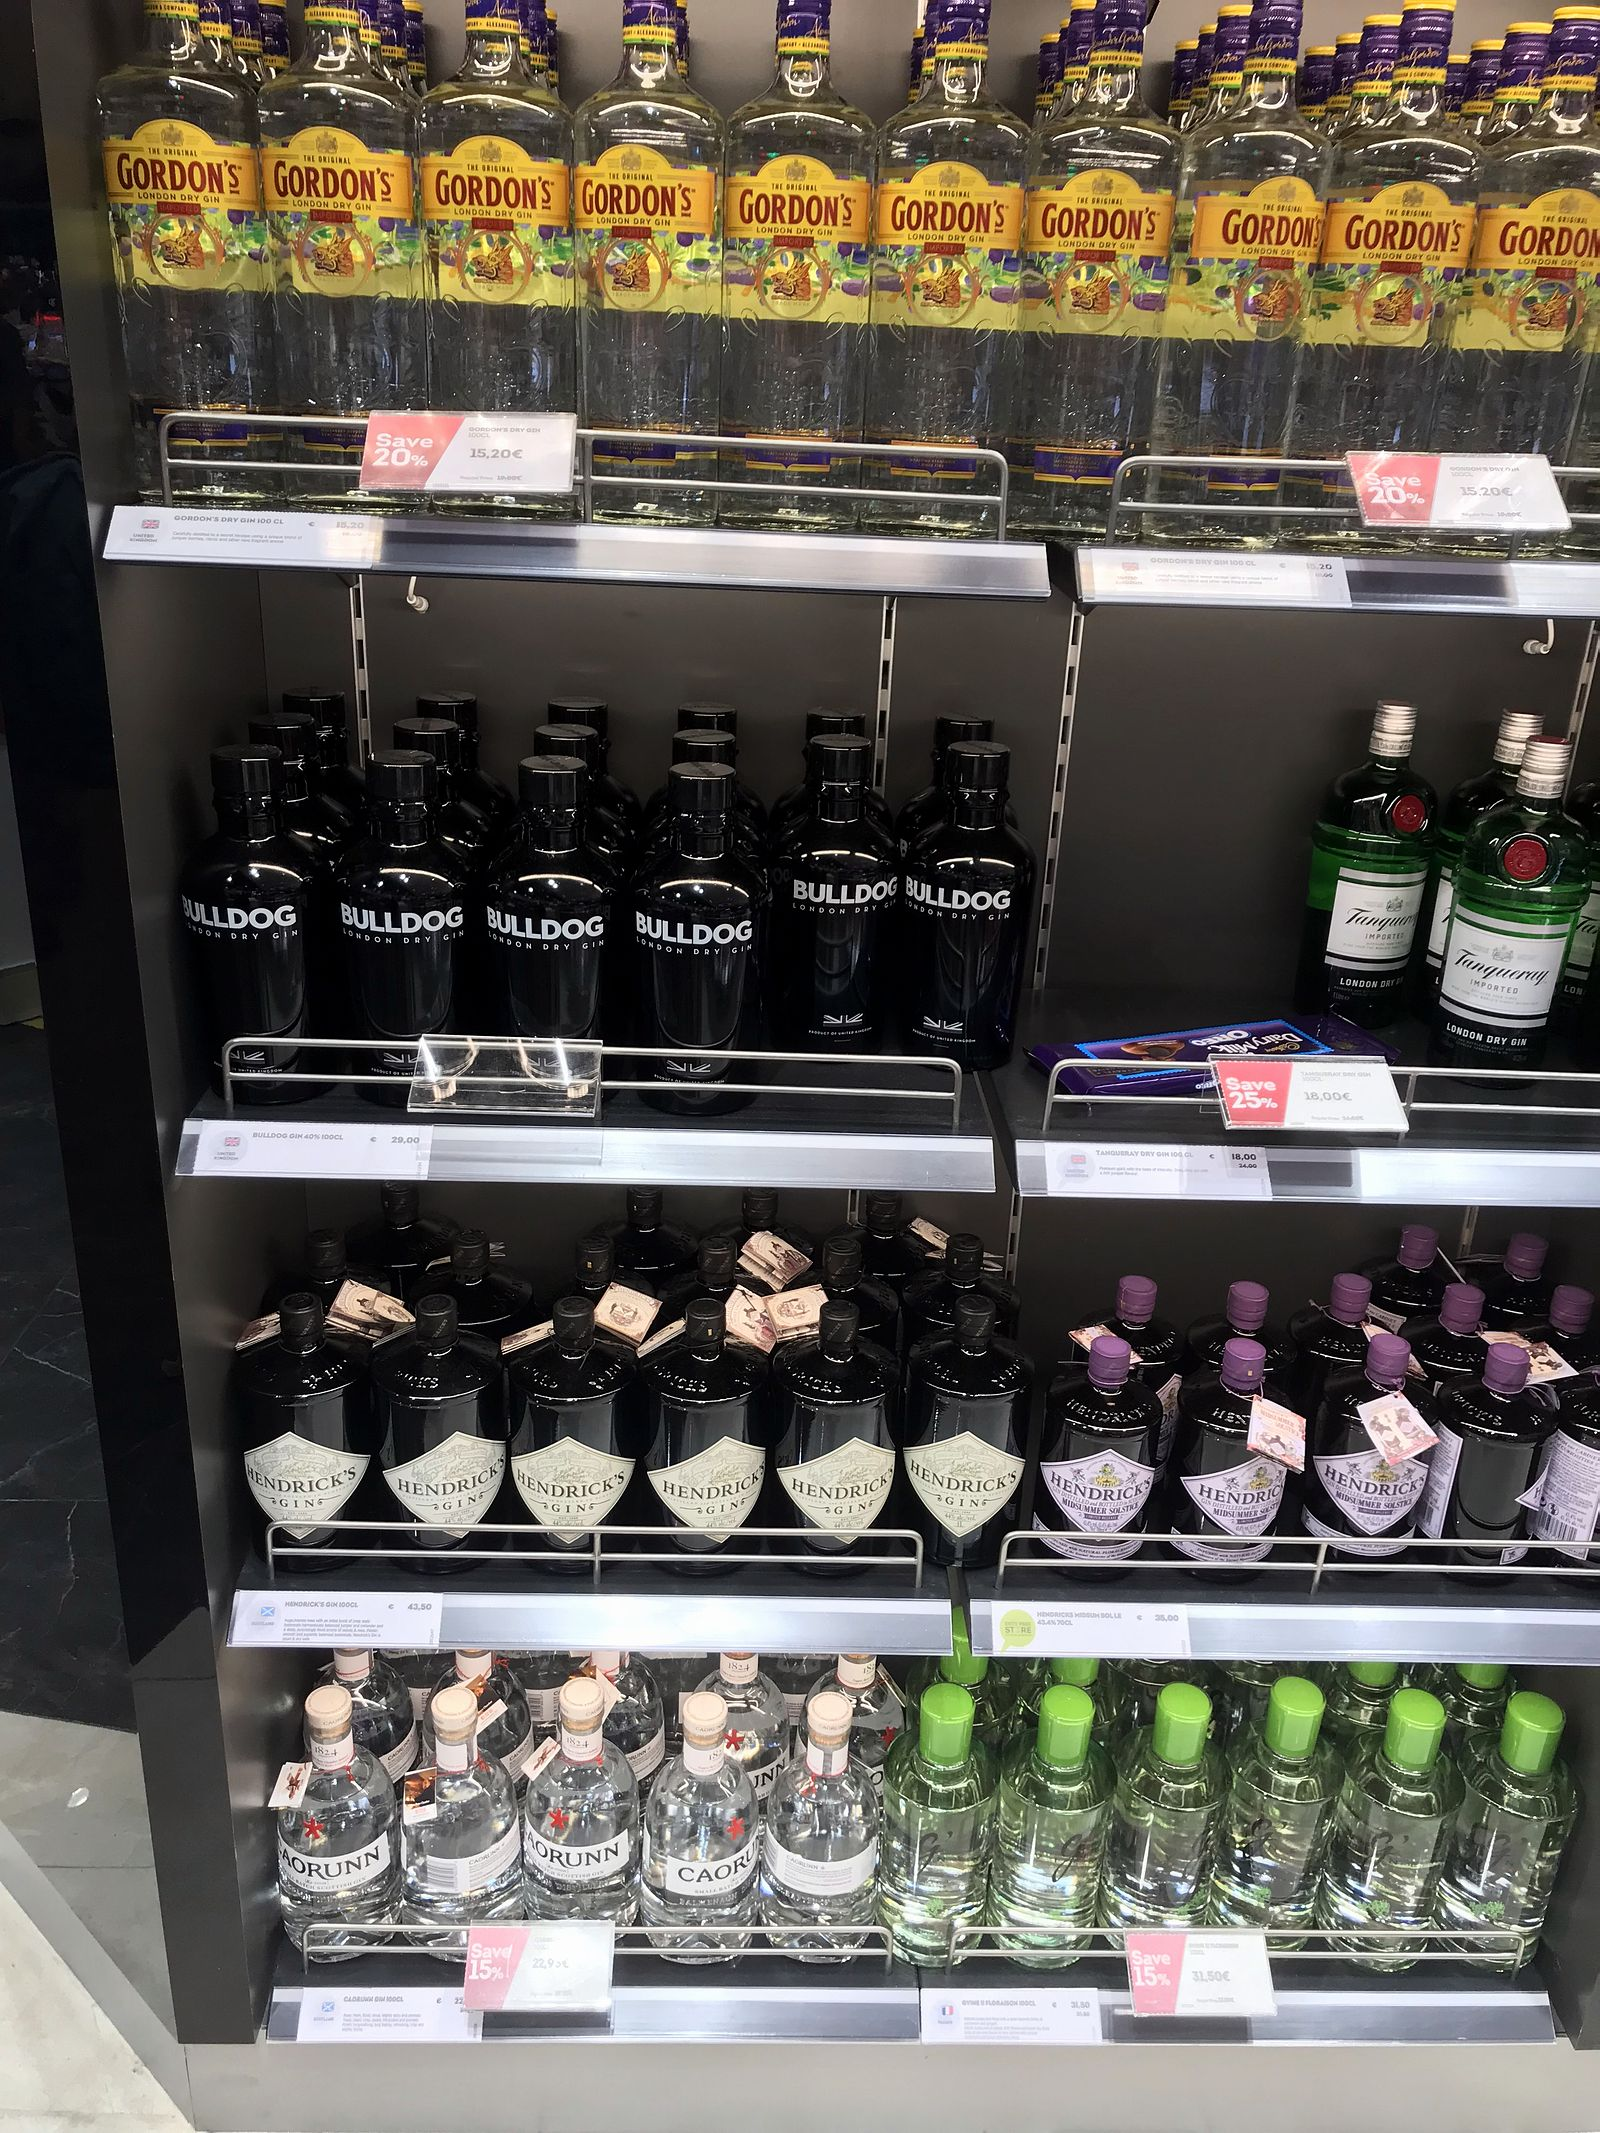 Duty free Antalya, august 2019, Gin Gordon's, Bulldog, Hendrick's